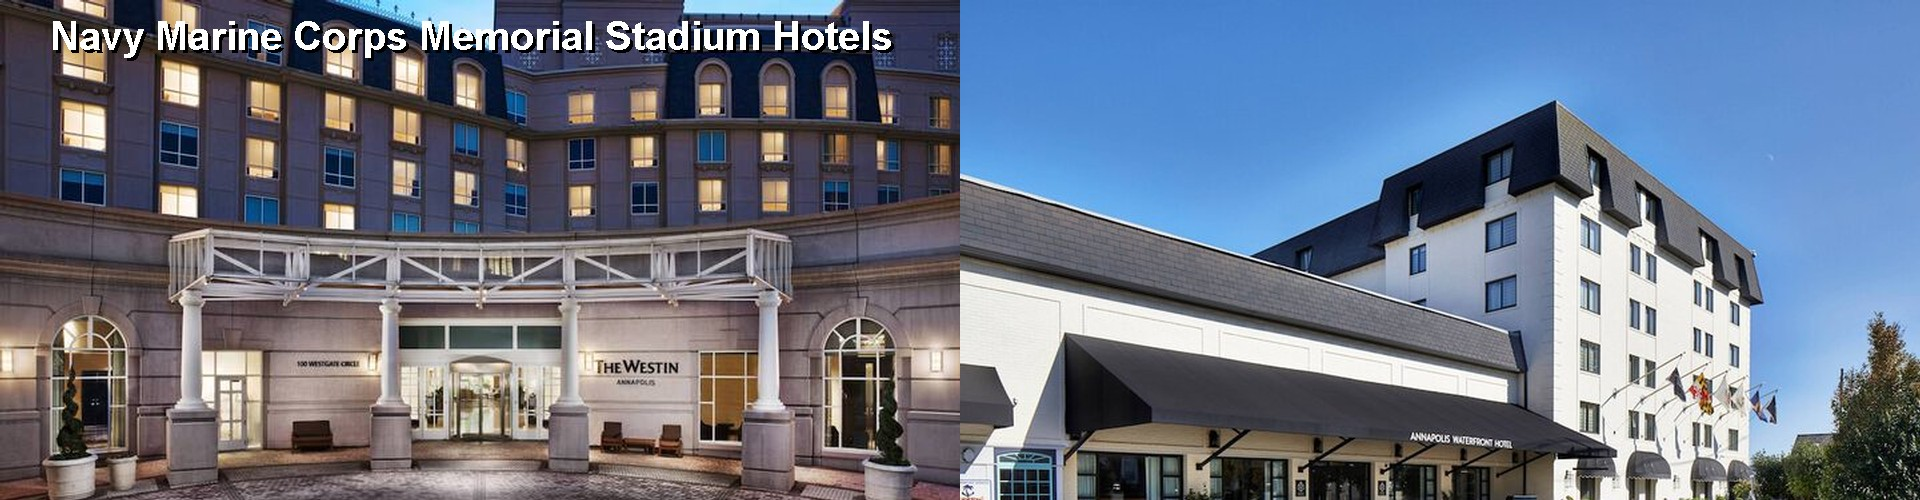 5 Best Hotels near Navy Marine Corps Memorial Stadium